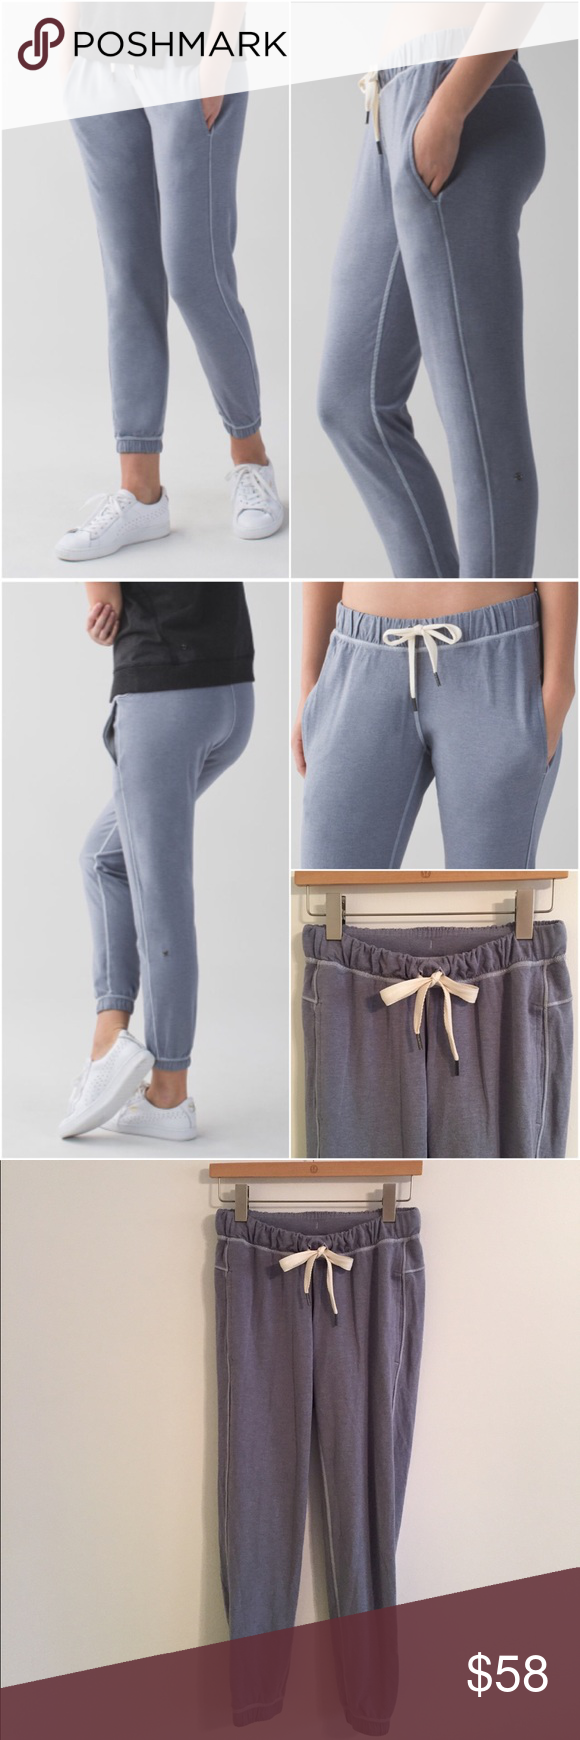 Lululemon Serenity Pant Lululemon Serenity Pant in the color Heathered Mod Blue Denim, size 4, great condition with no flaws. Buttery soft and so comfortable! Bundle to save 10% off ❤️ lululemon athletica Pants Track Pants & Joggers